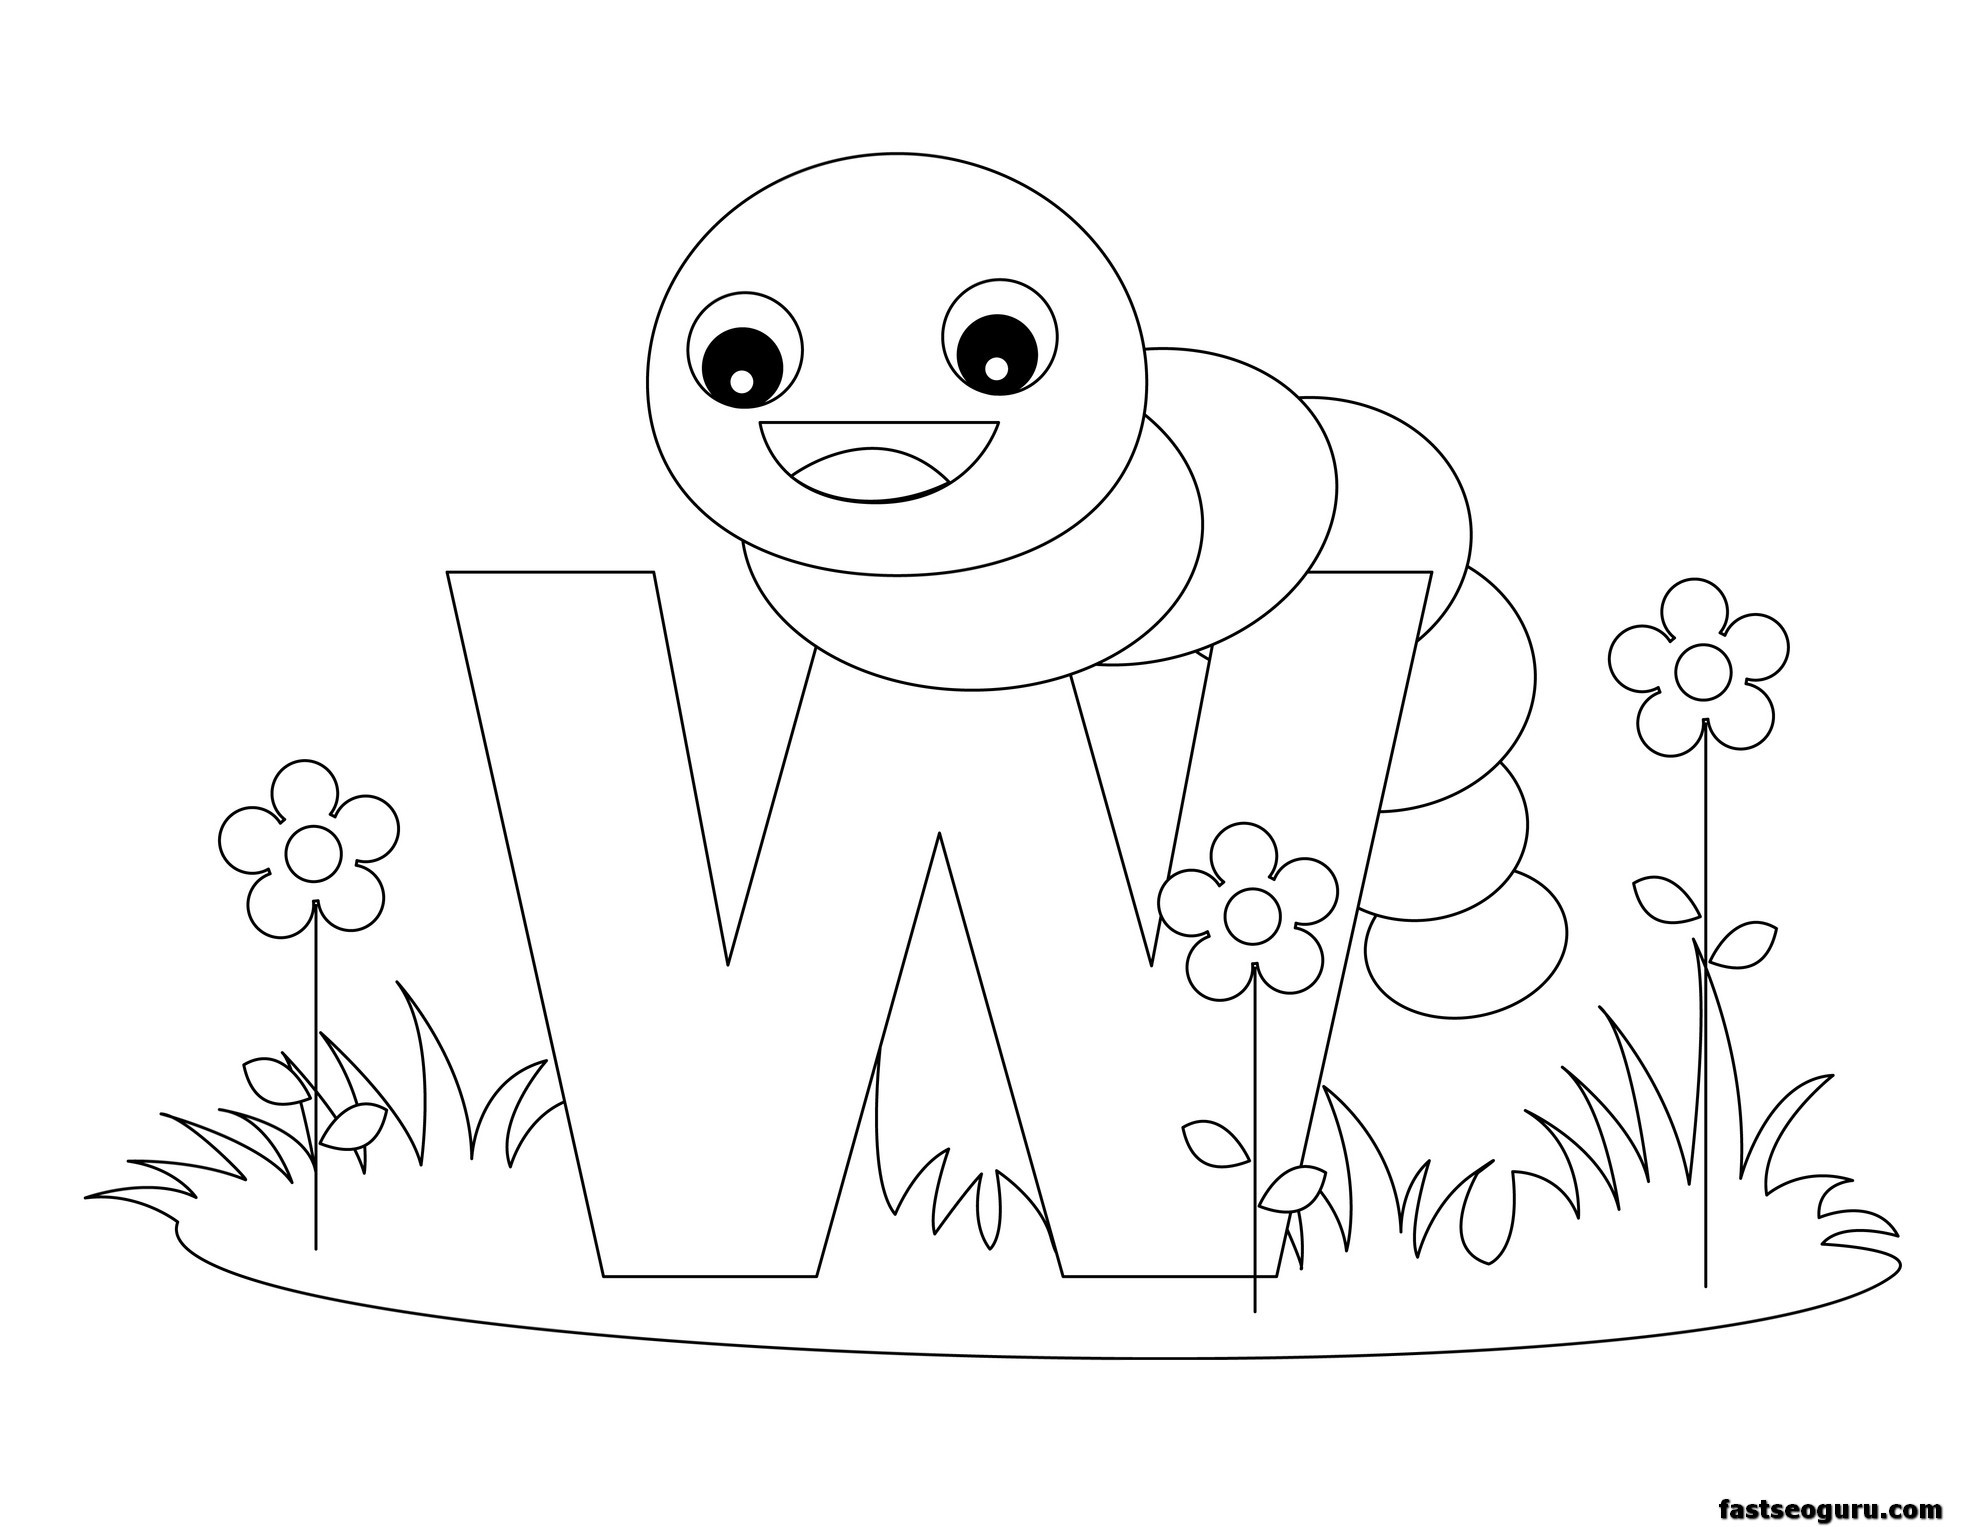 Printable Animal Alphabet Worksheets Letter W Is For Worm